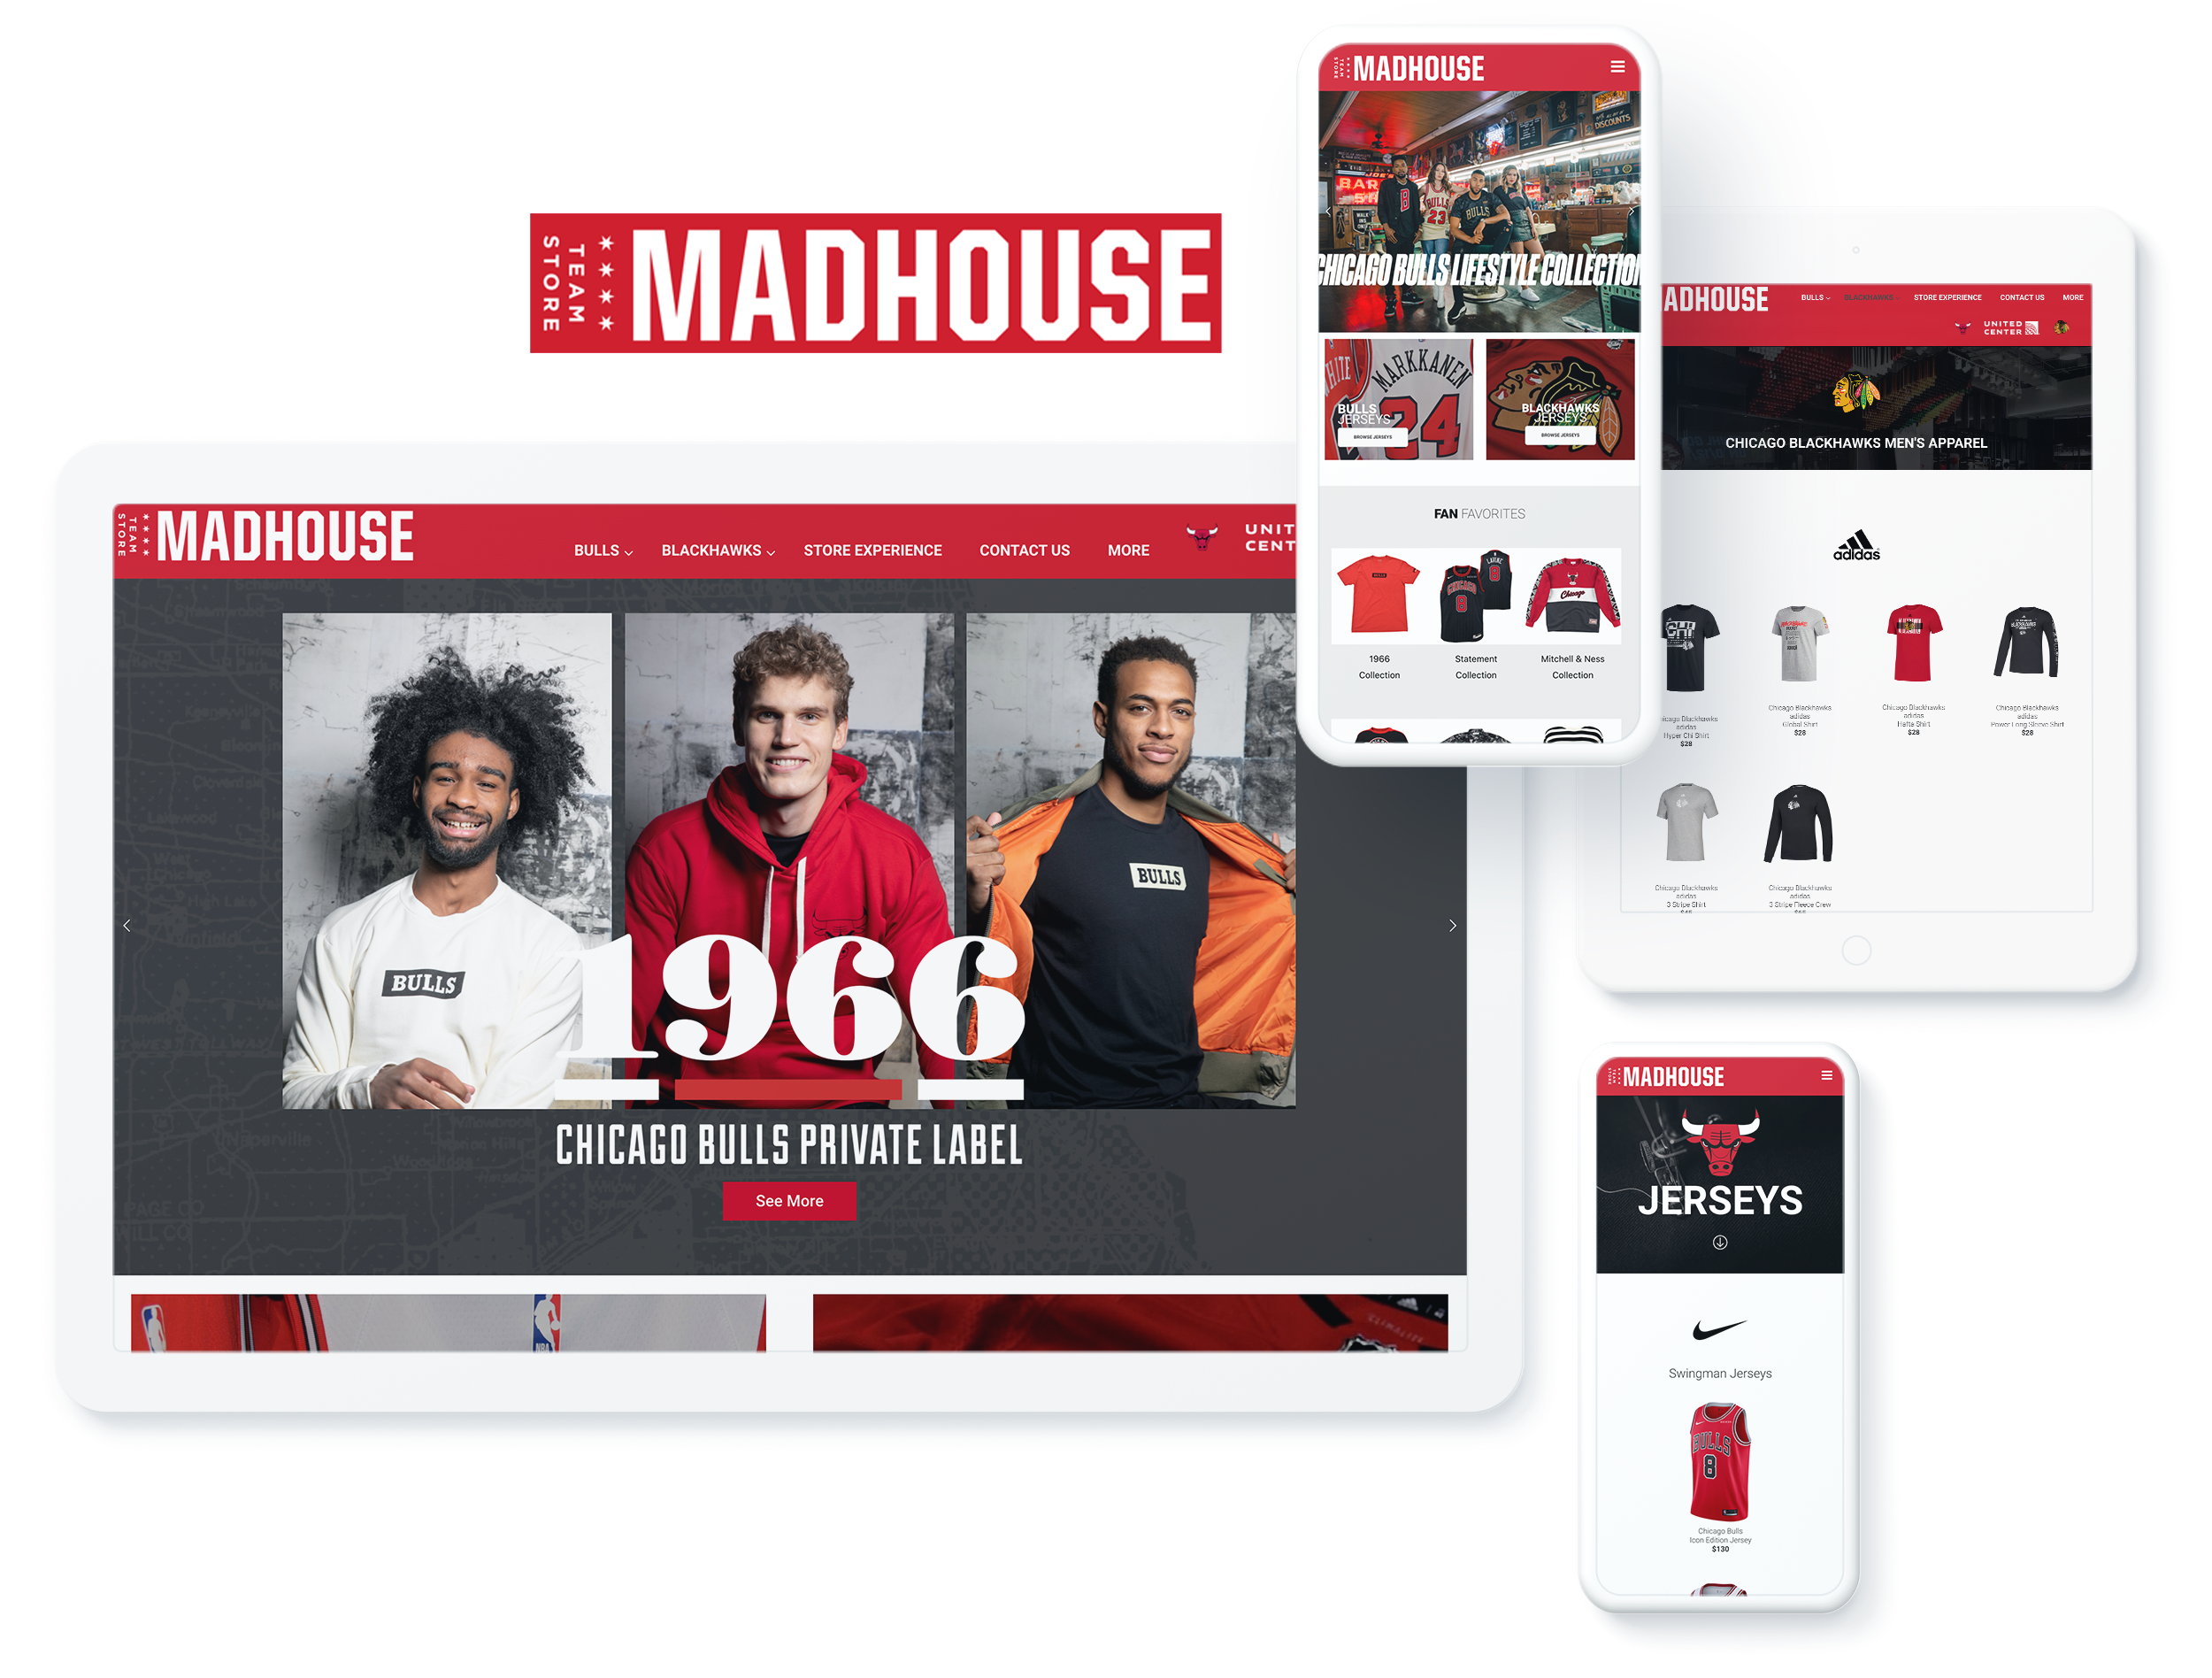 Madhouse Teamstore Spotlight